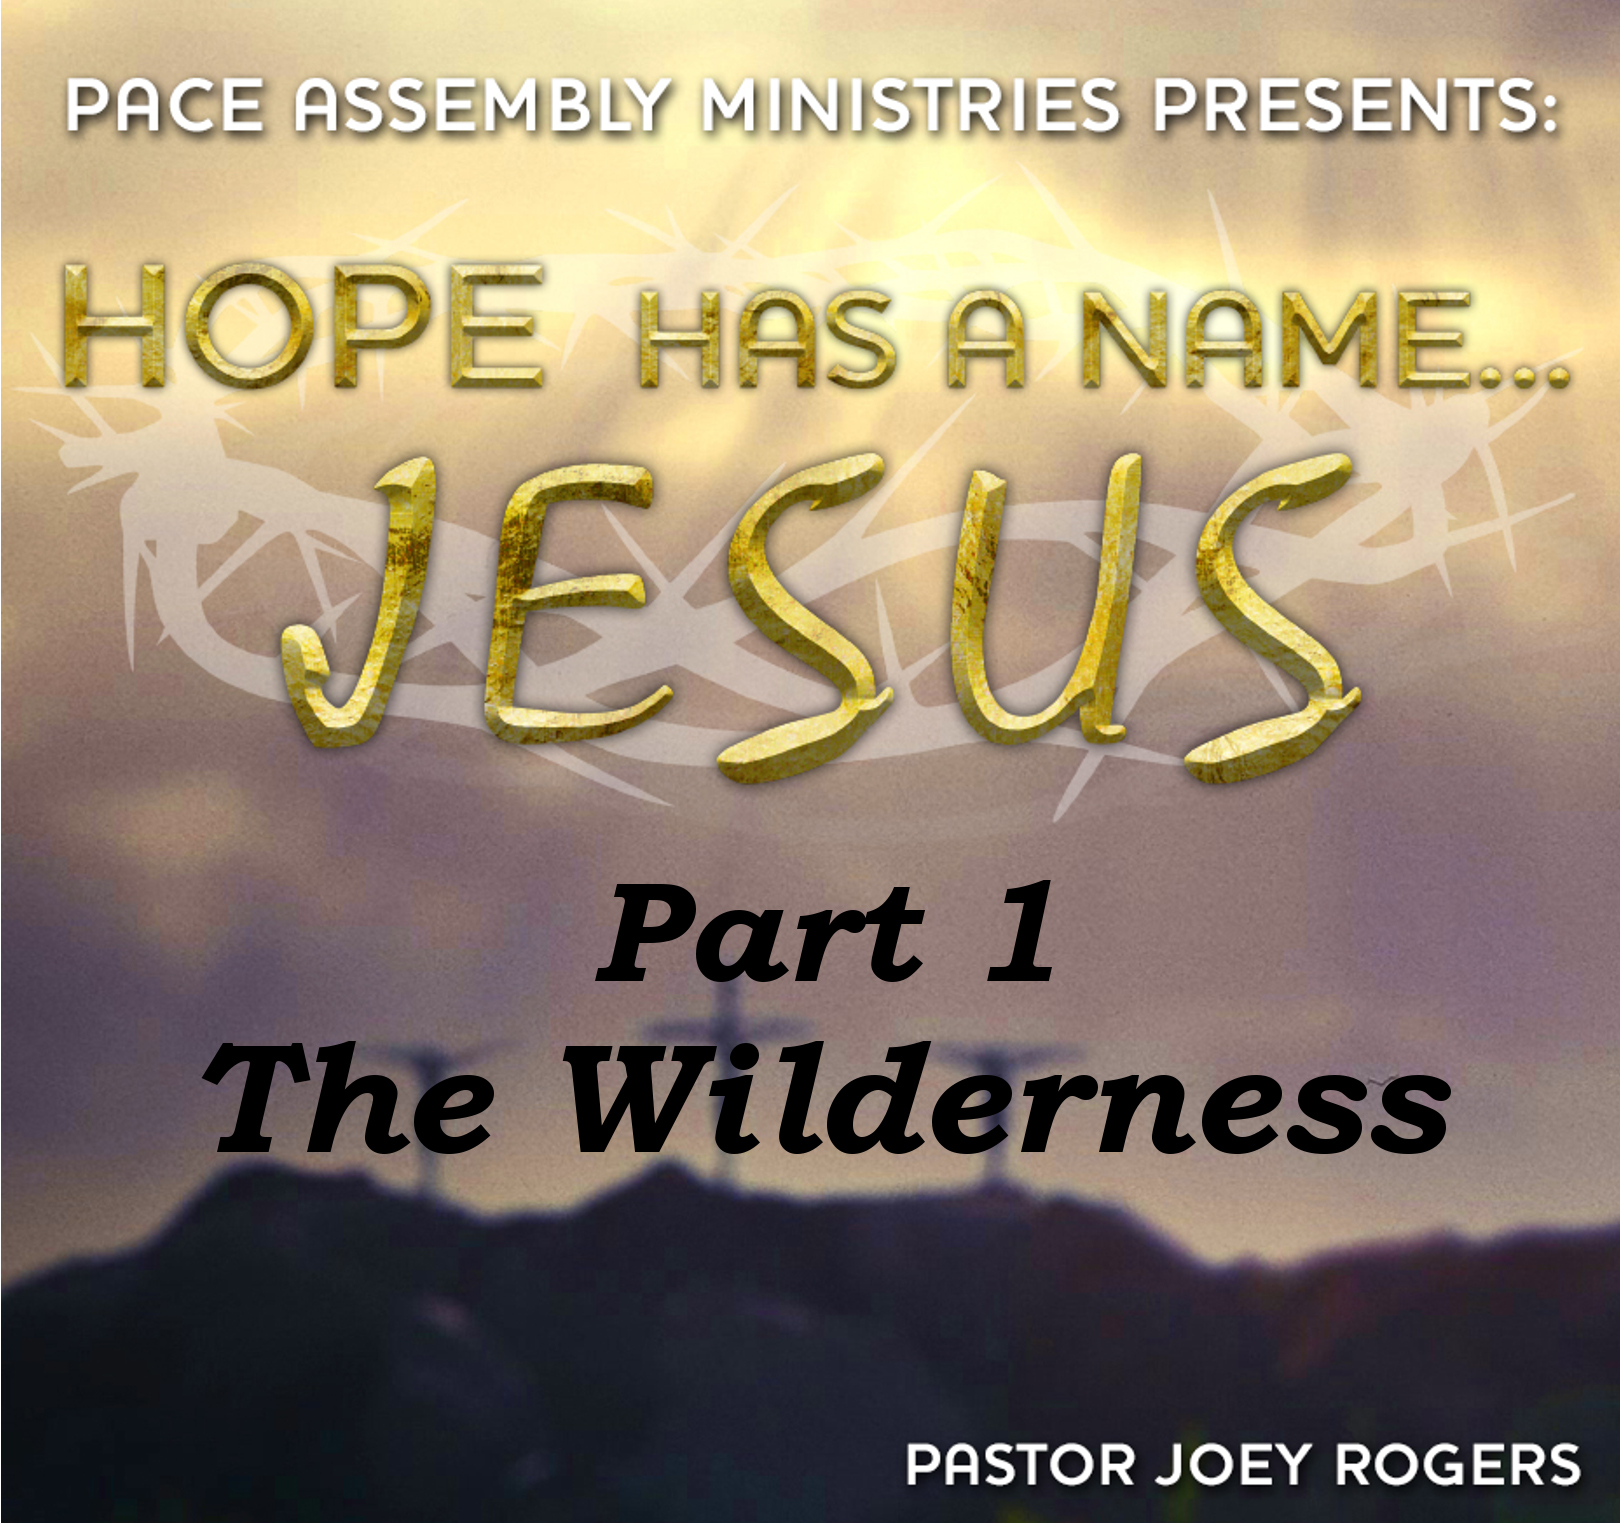 Hope Has a Name... Jesus Part 1 - The Wilderness